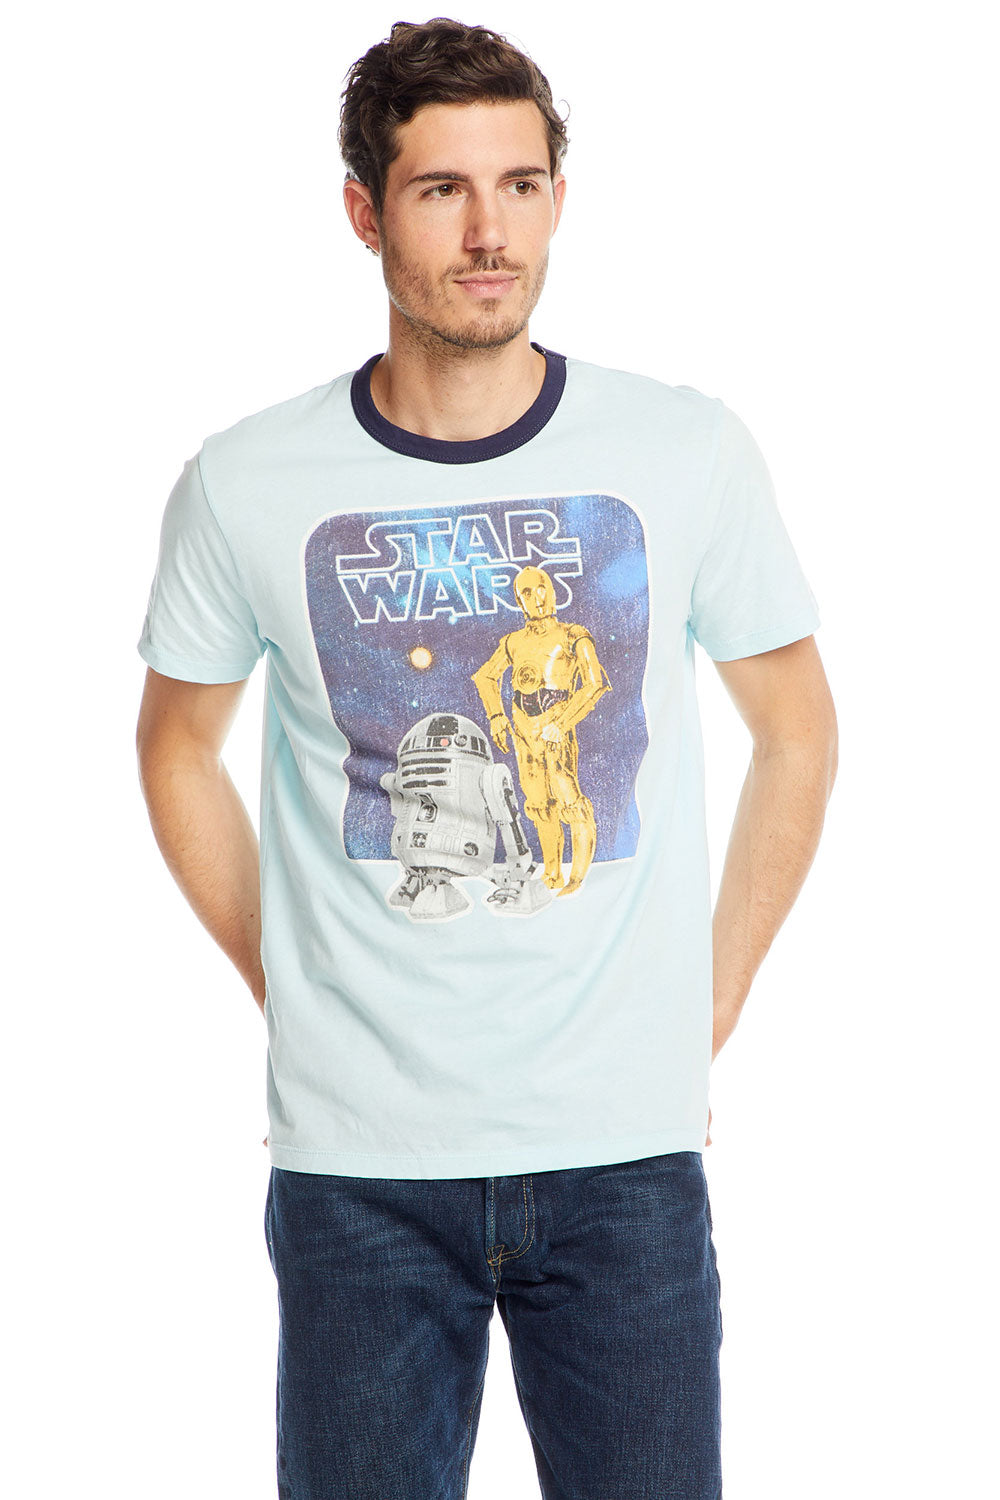 Star Wars - R2-D2 & C3PO MENS chaserbrand4.myshopify.com